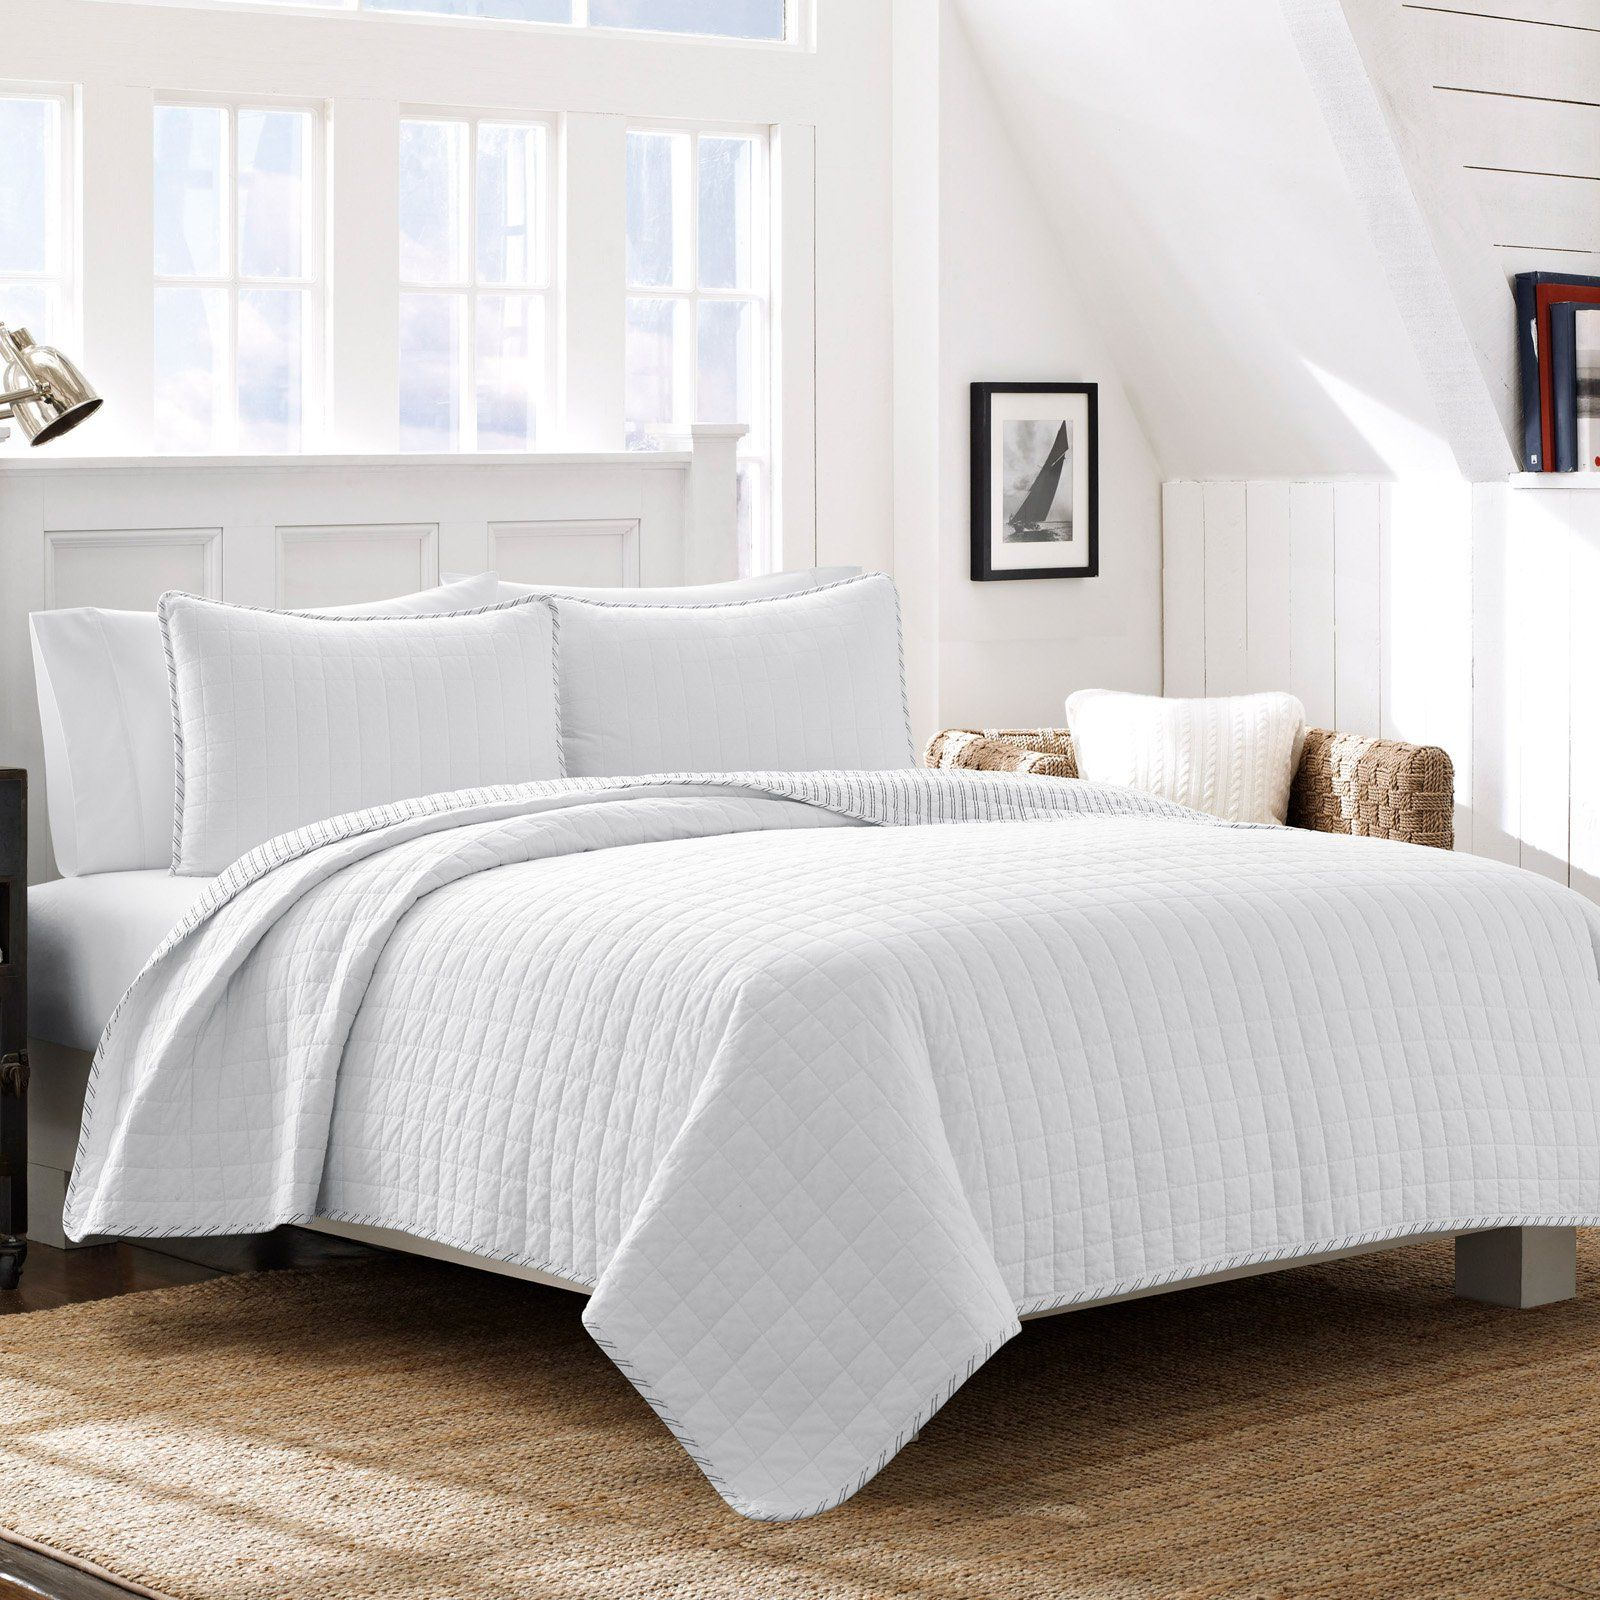 Cotton Quilt Set By Nautica White Size Full Queen Luxurious